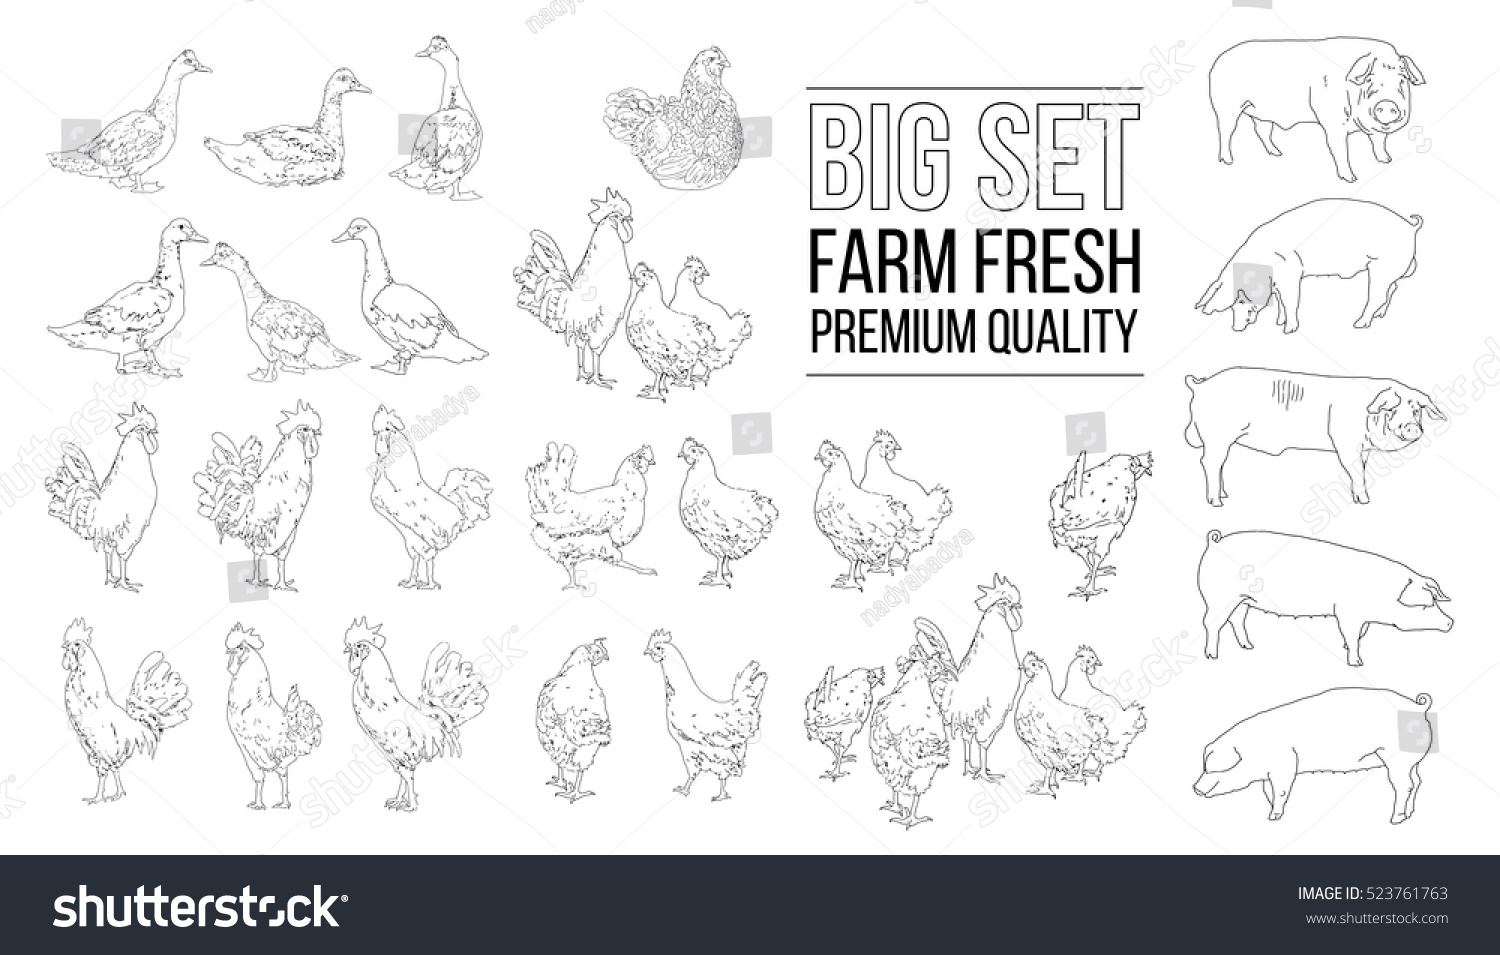 Agri cultures project logo duckdog design - Big Set Of Hand Drawn Agriculture Animals Vector Set Farm Animals Poultry